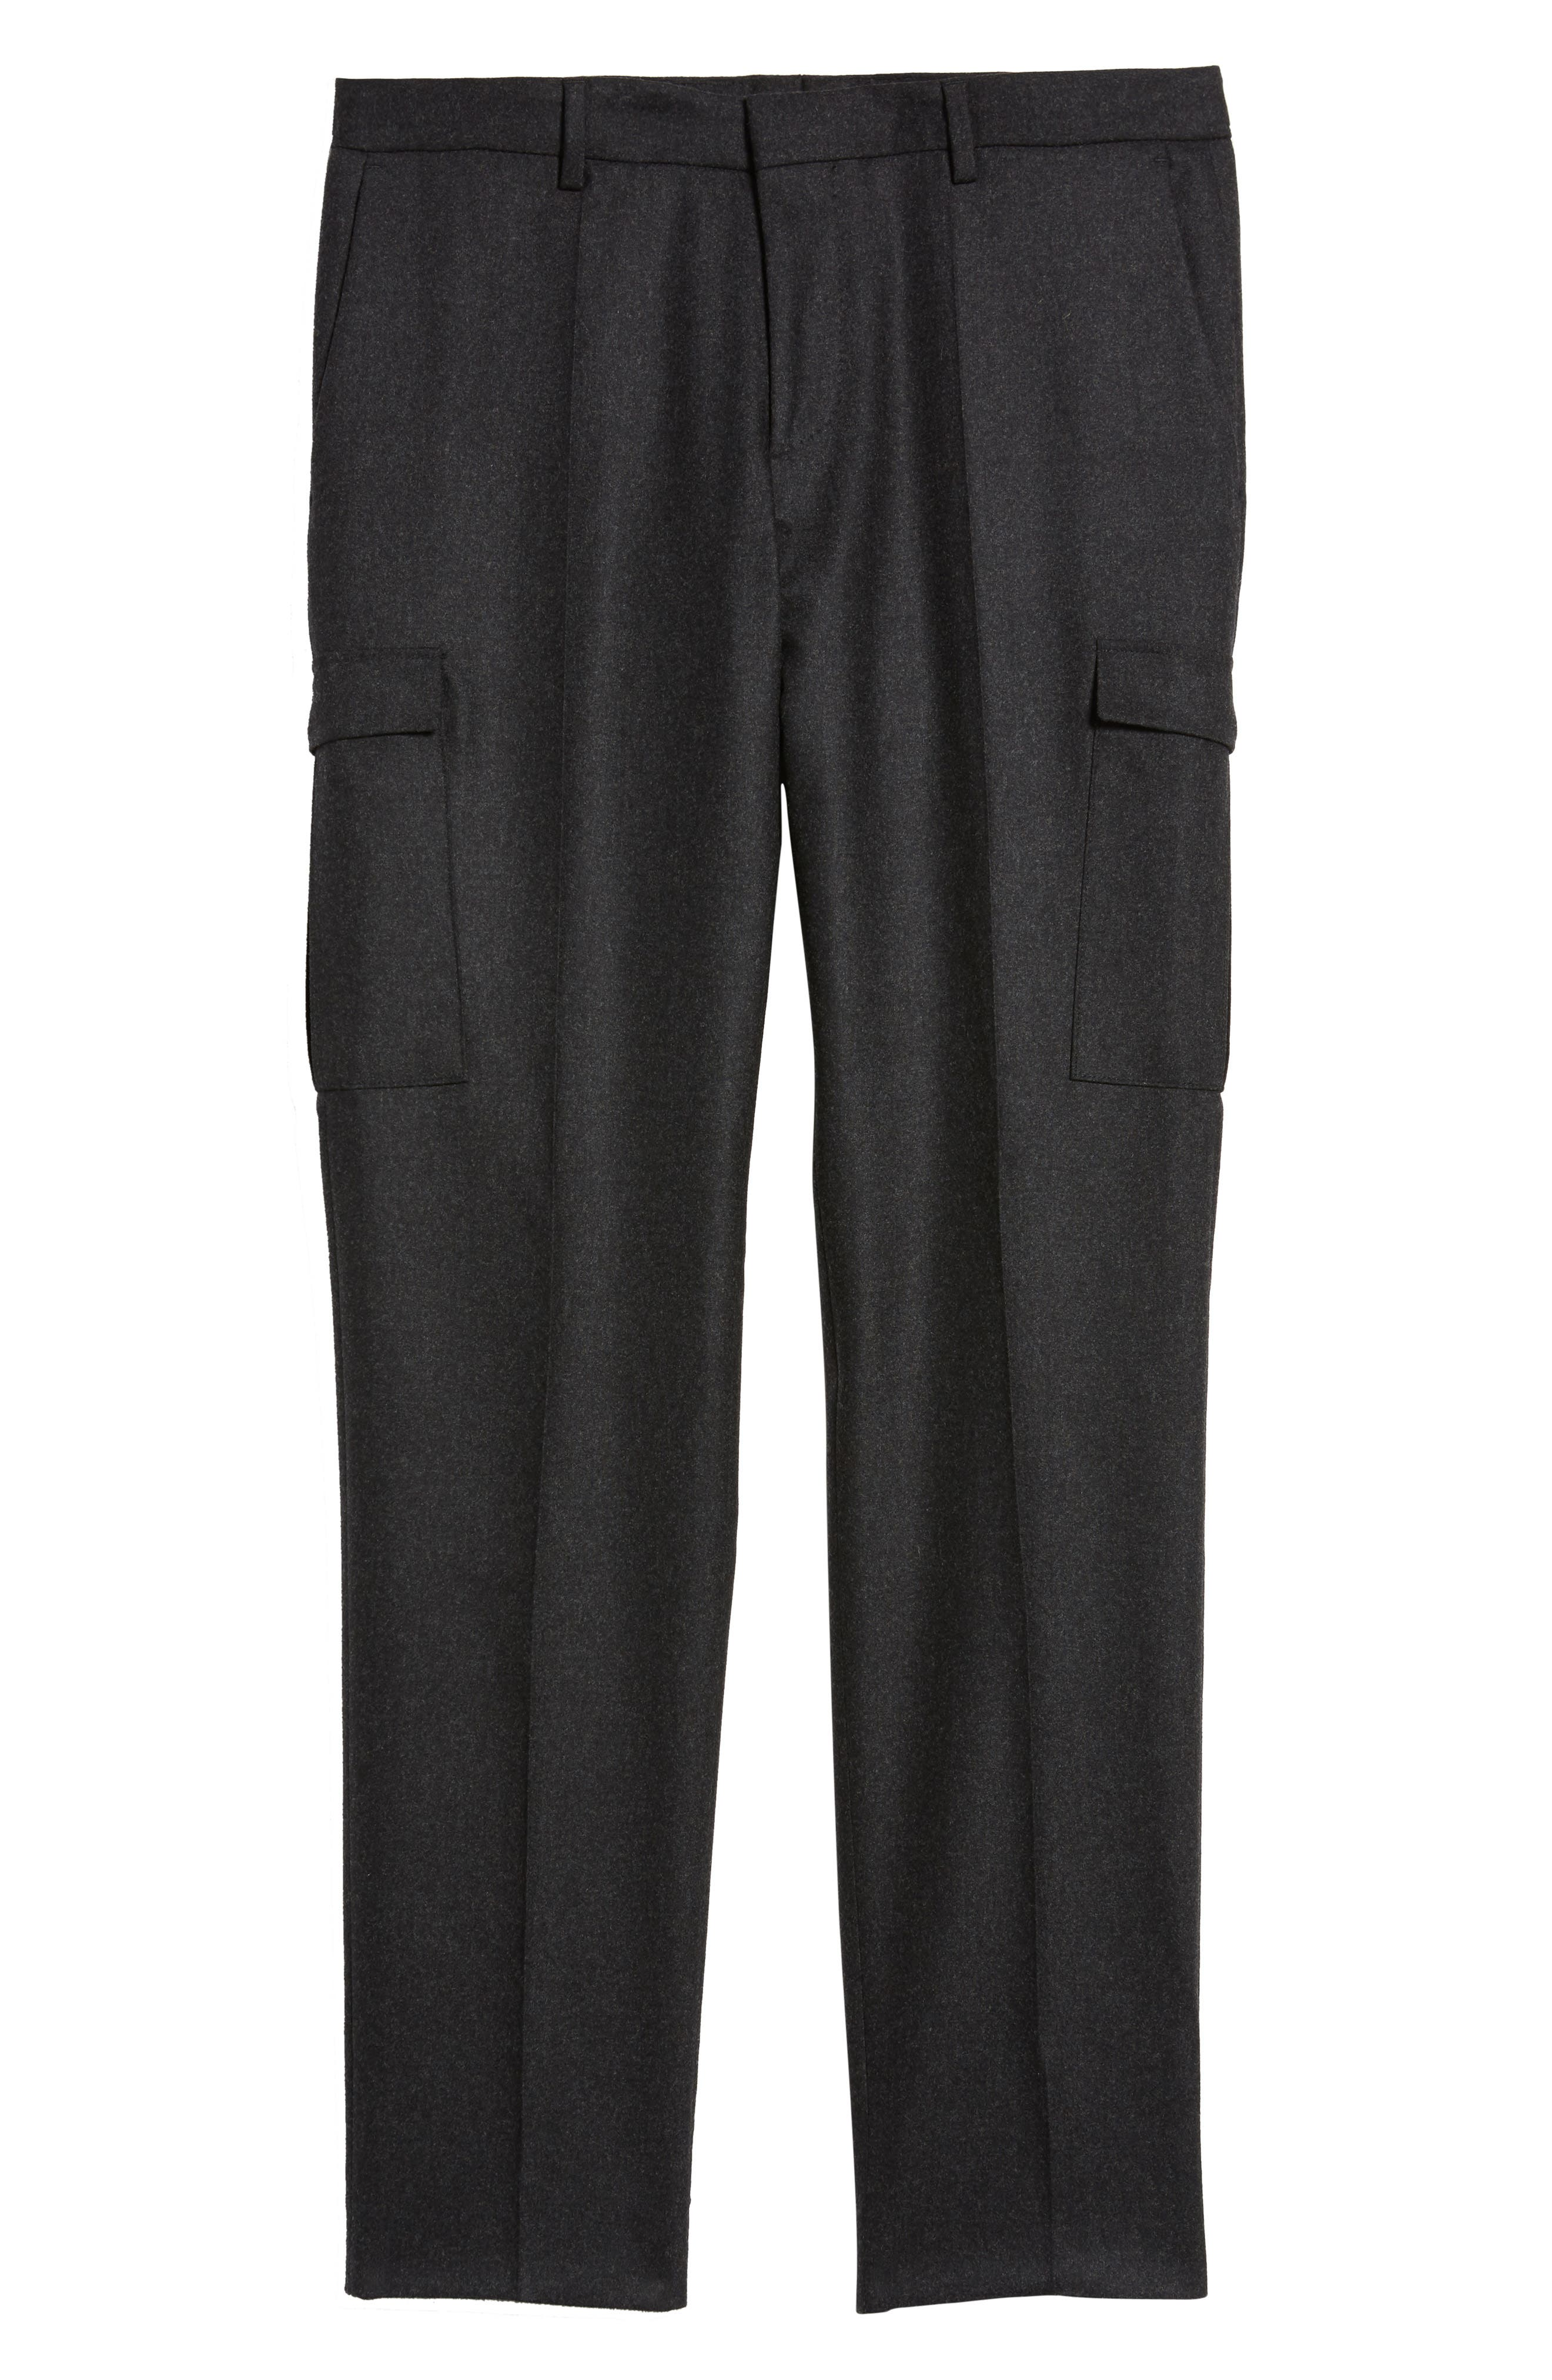 Balour Flat Front Stretch Solid Wool & Cashmere Cargo Trousers,                             Alternate thumbnail 6, color,